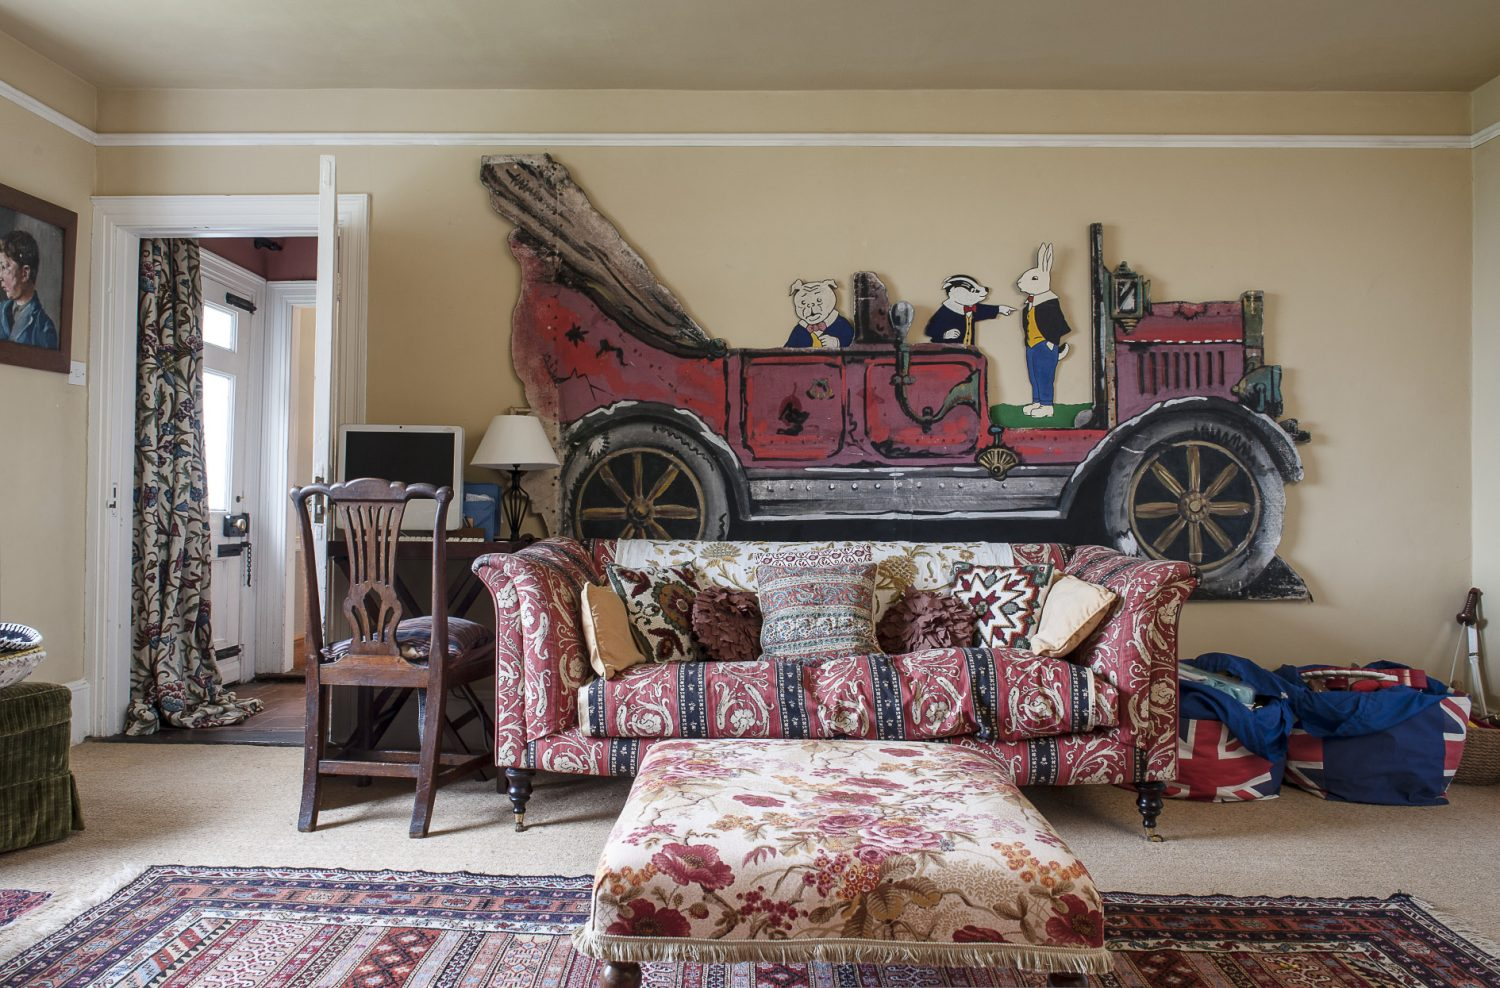 Dominating one wall of the children's playroom is a striking piece of Chitty Chitty Bang Bang theatre set from Mccully & Crane in Rye